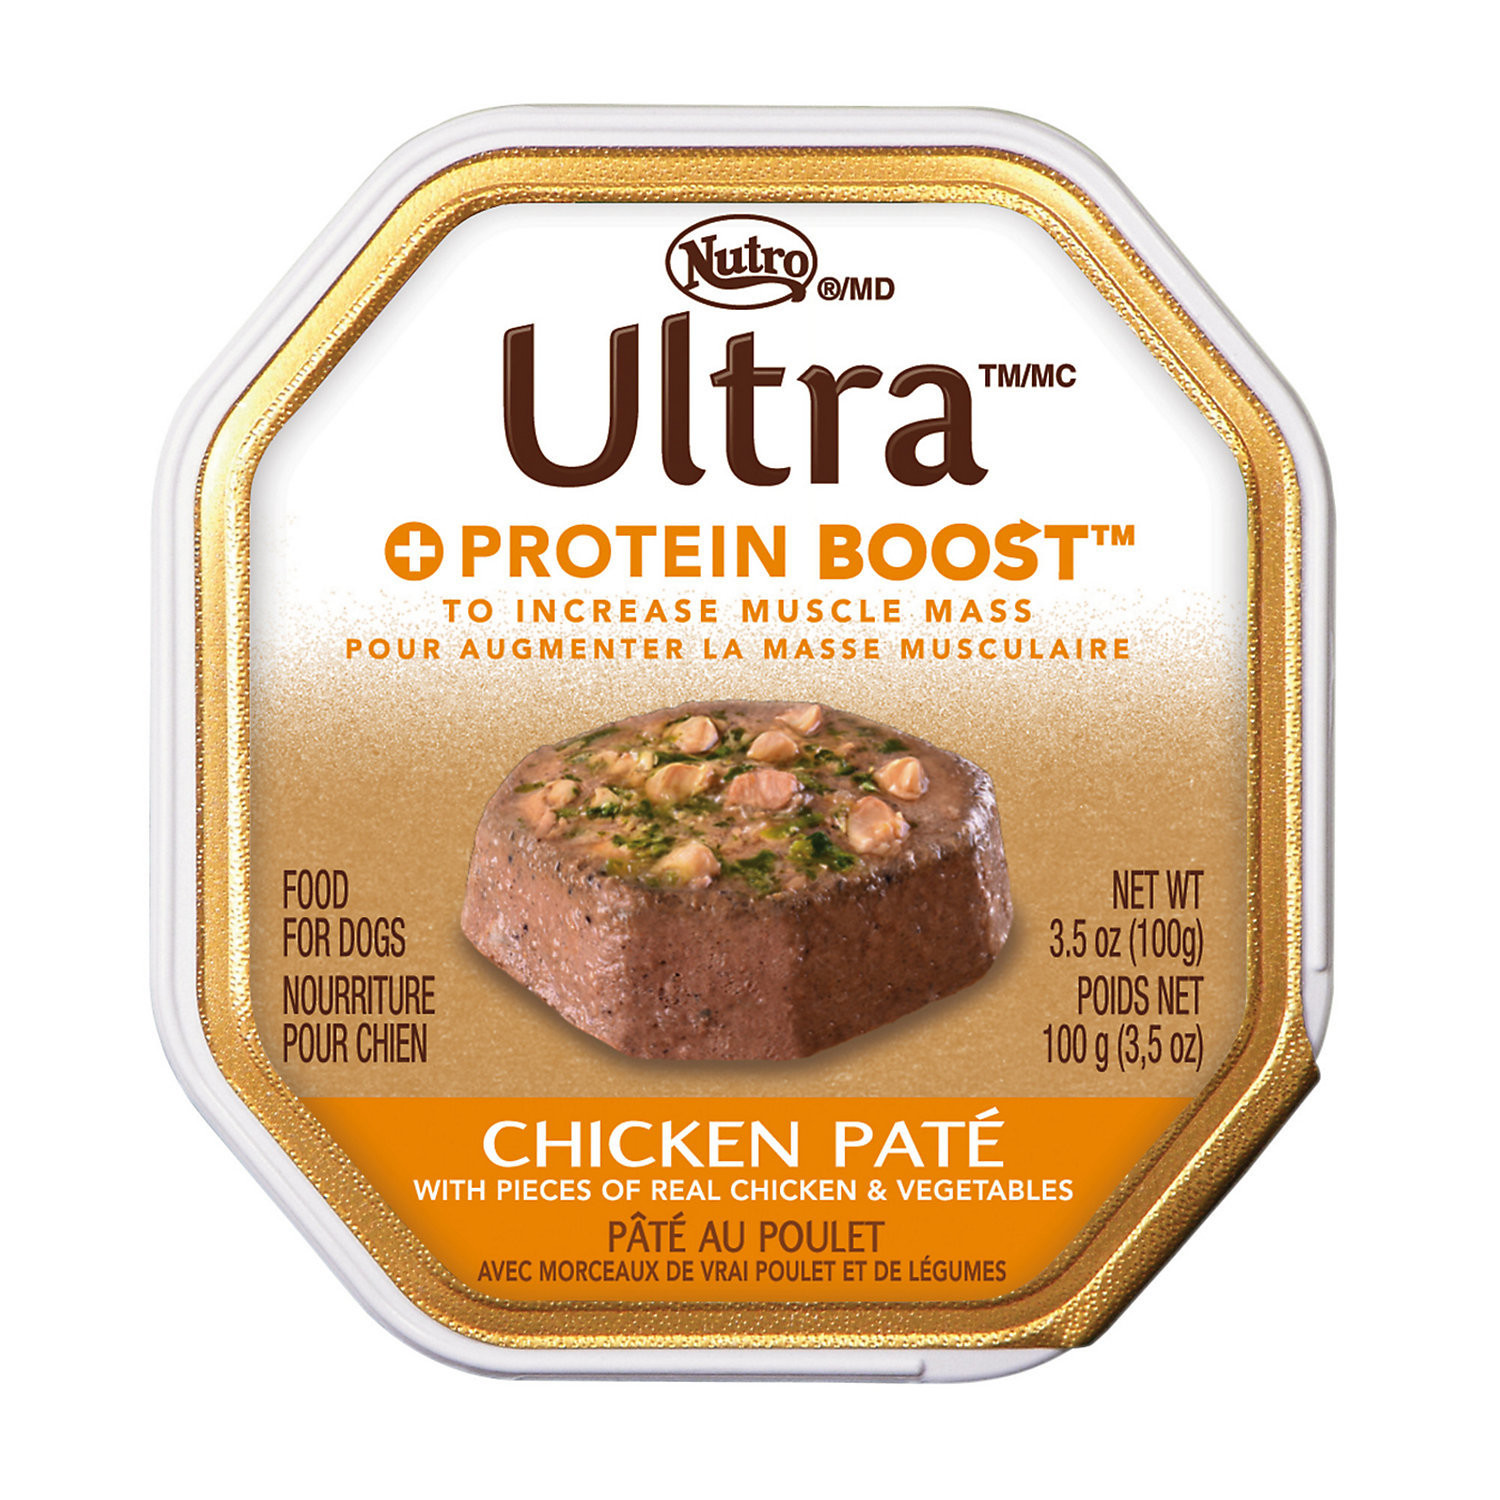 Nutro Ultra Protein Boost Chicken Pate Dog Food Trays (3.5 oz.; Case of 24) (5/19) (A.K5)